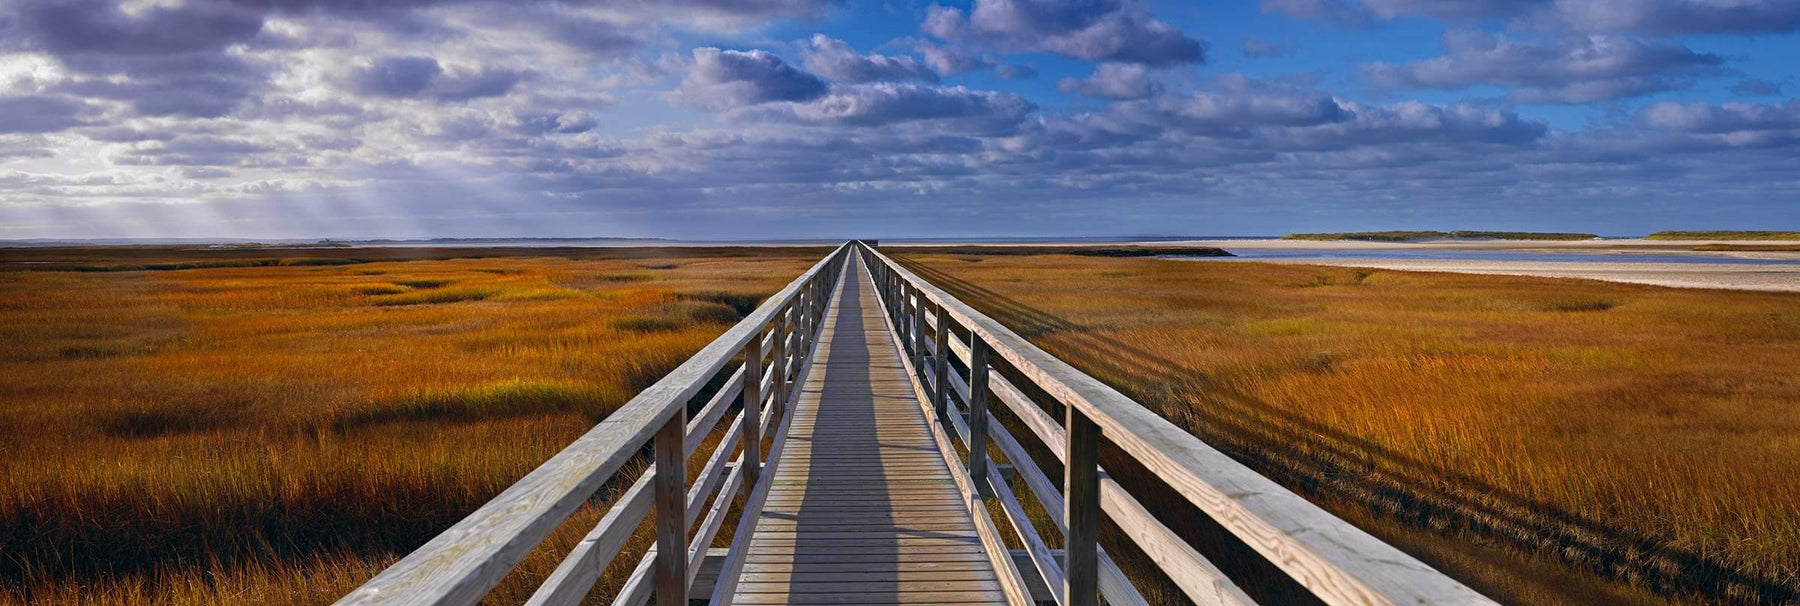 Wooden pier reaching over the grass marshlands along the coast of Cape Cod Massachusetts